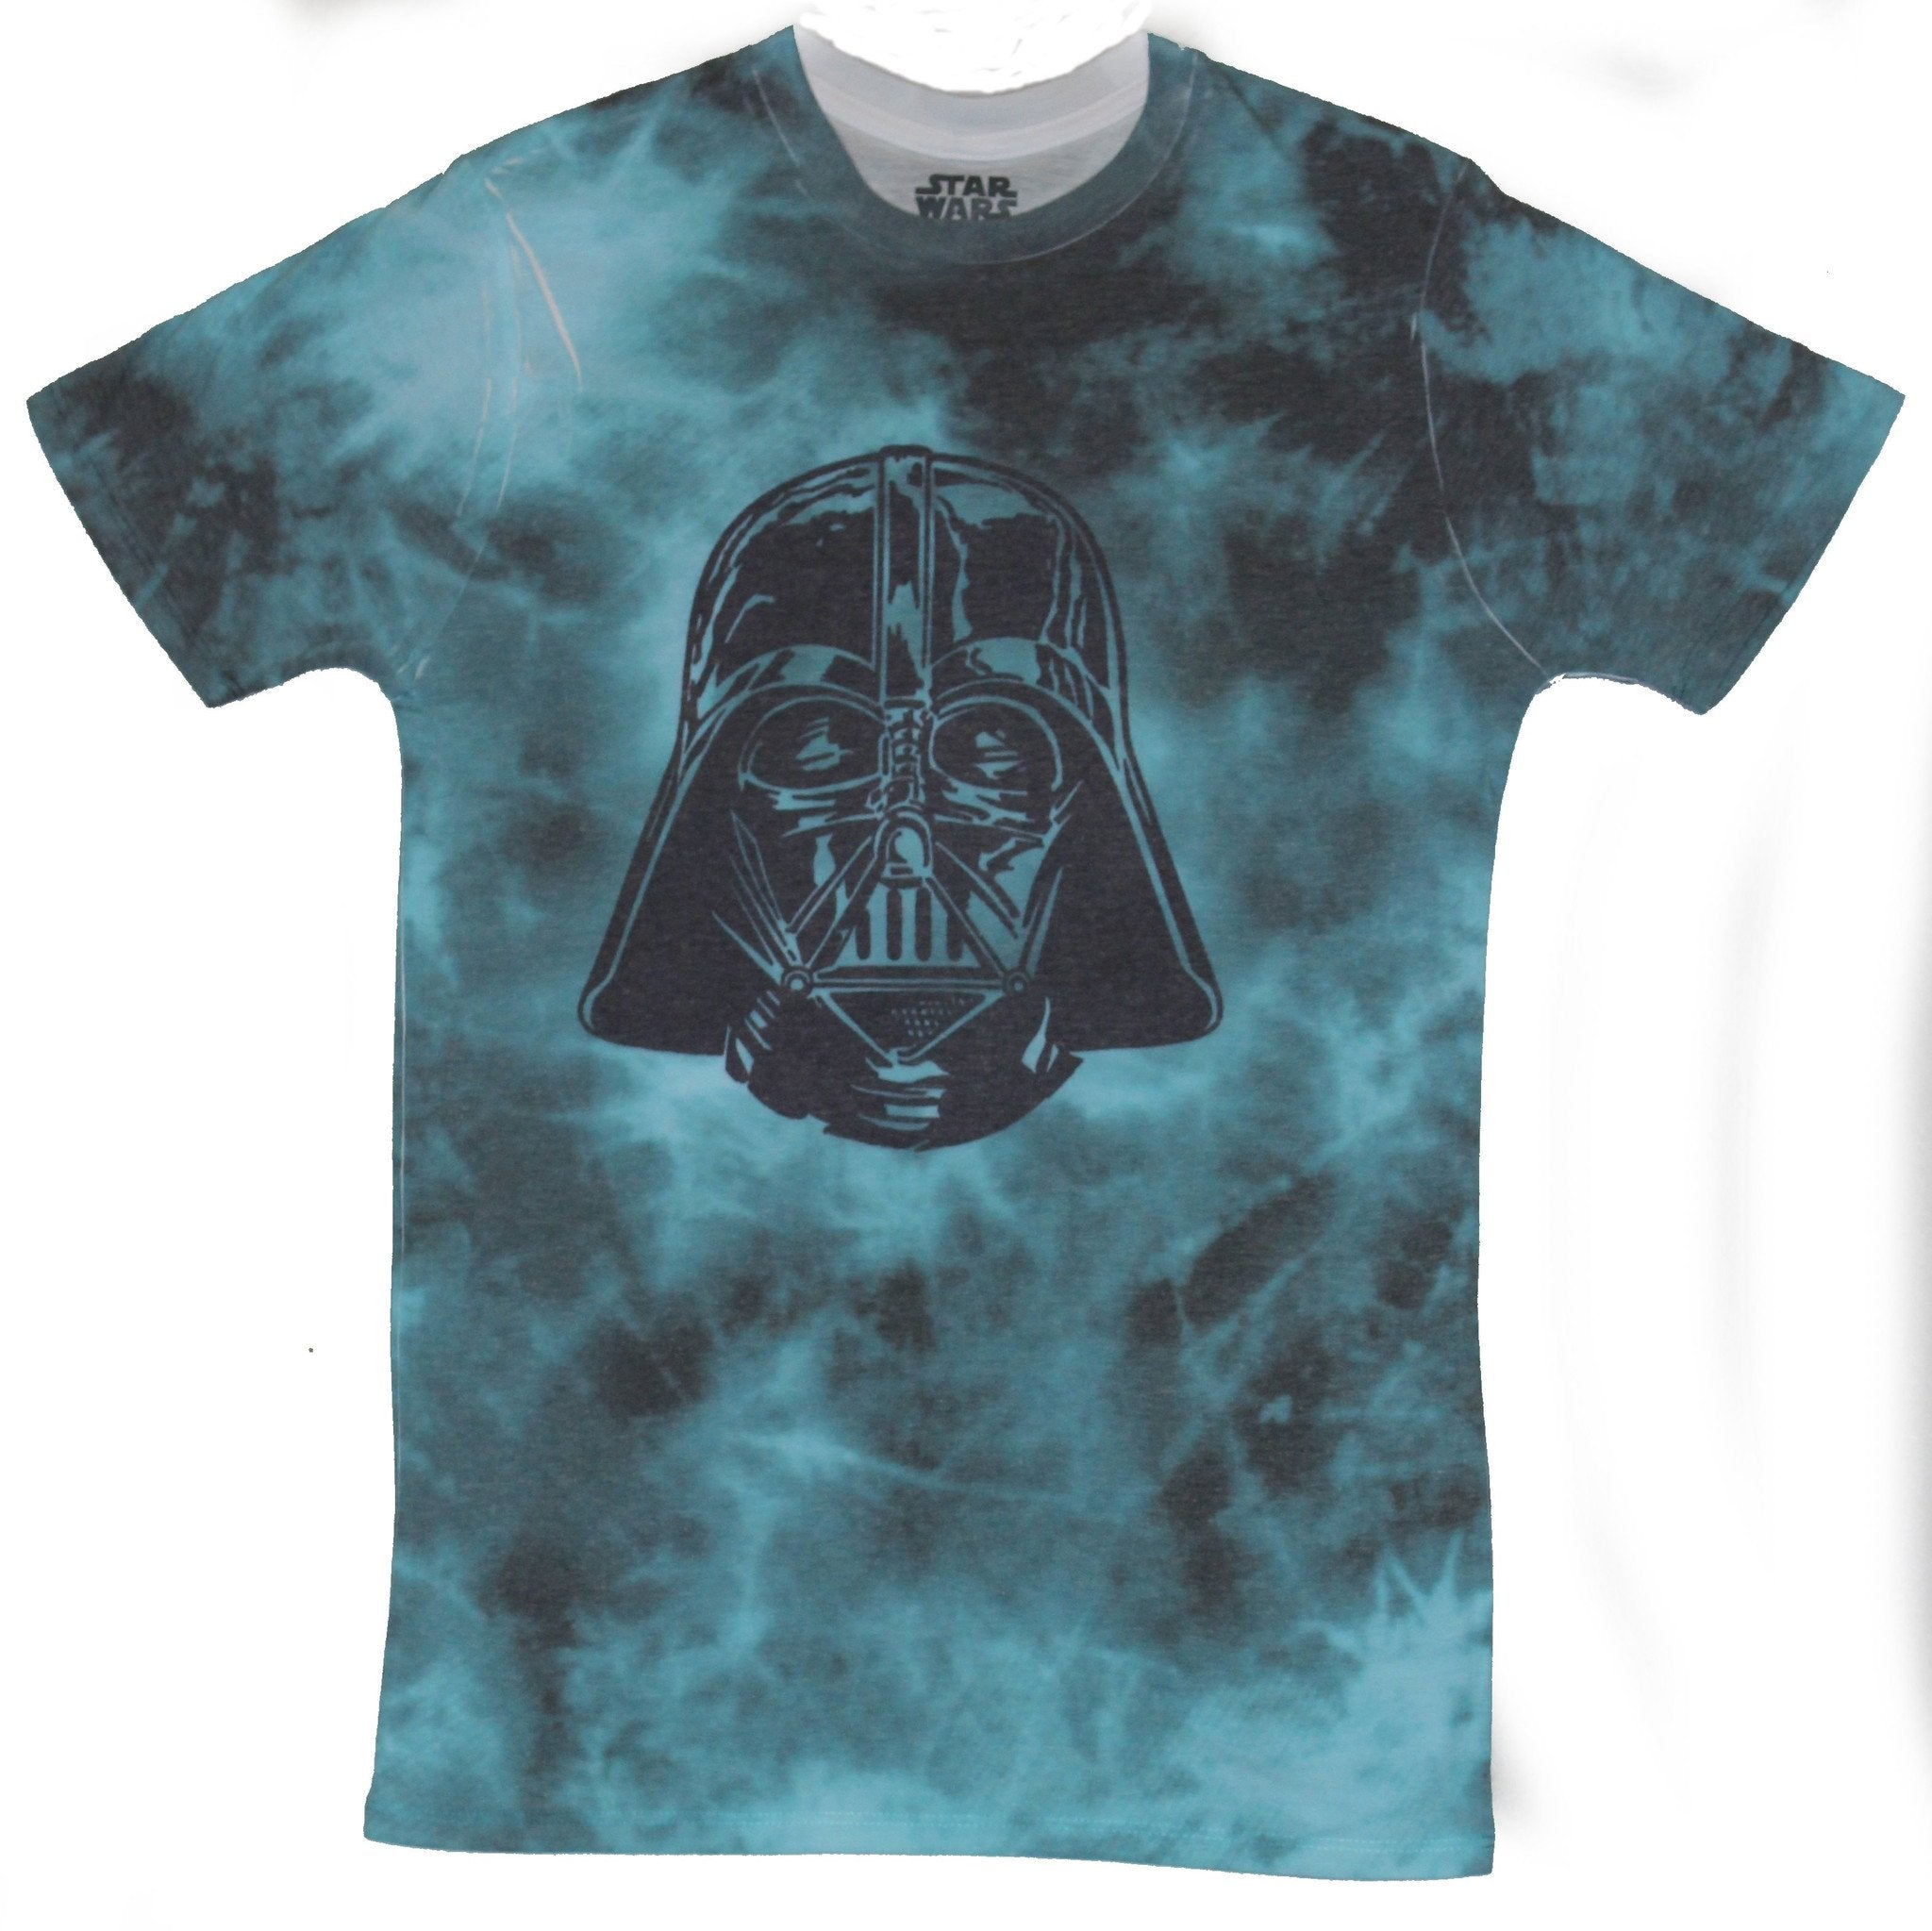 Star Wars Mens T-Shirt - Floating Darth Vader Head